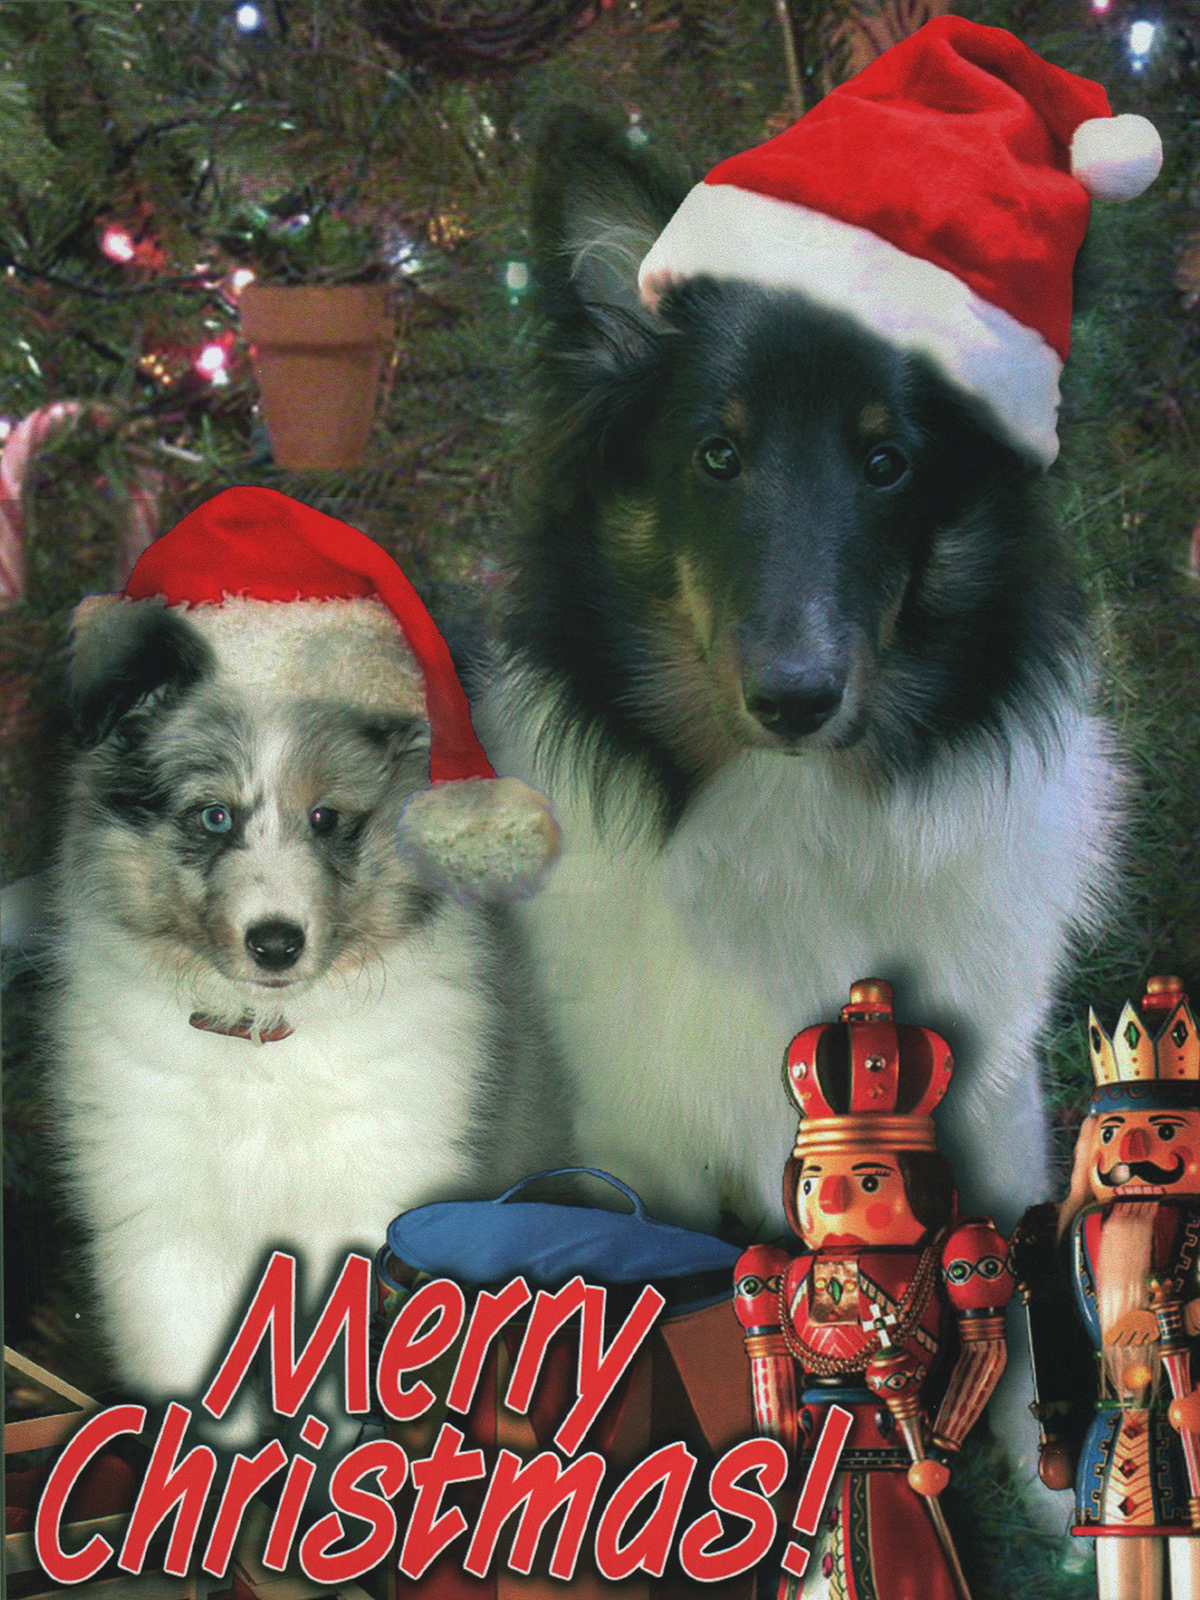 Merry Christmas to all! by Deecey